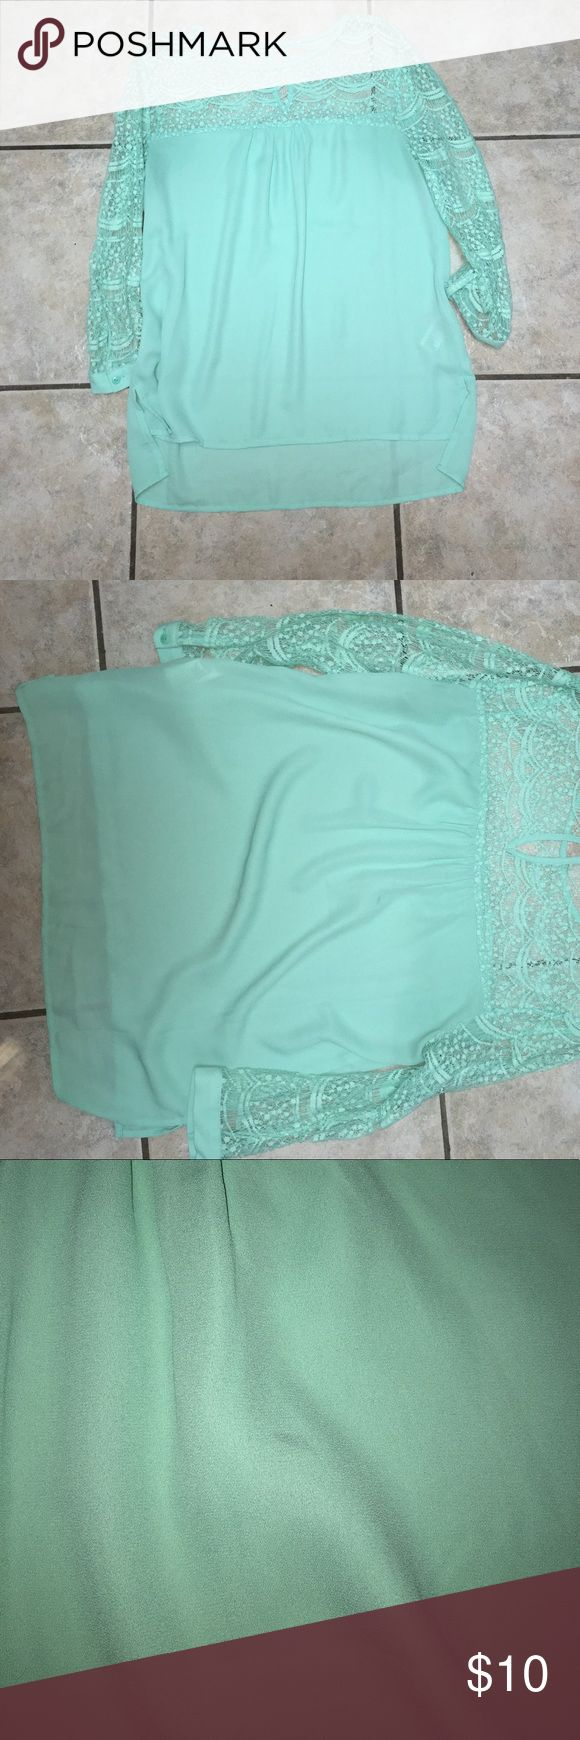 Forever 21 Turquoise Blouse Gently worn with a small stain on the back super cute and trendy! Forever 21 Tops Blouses